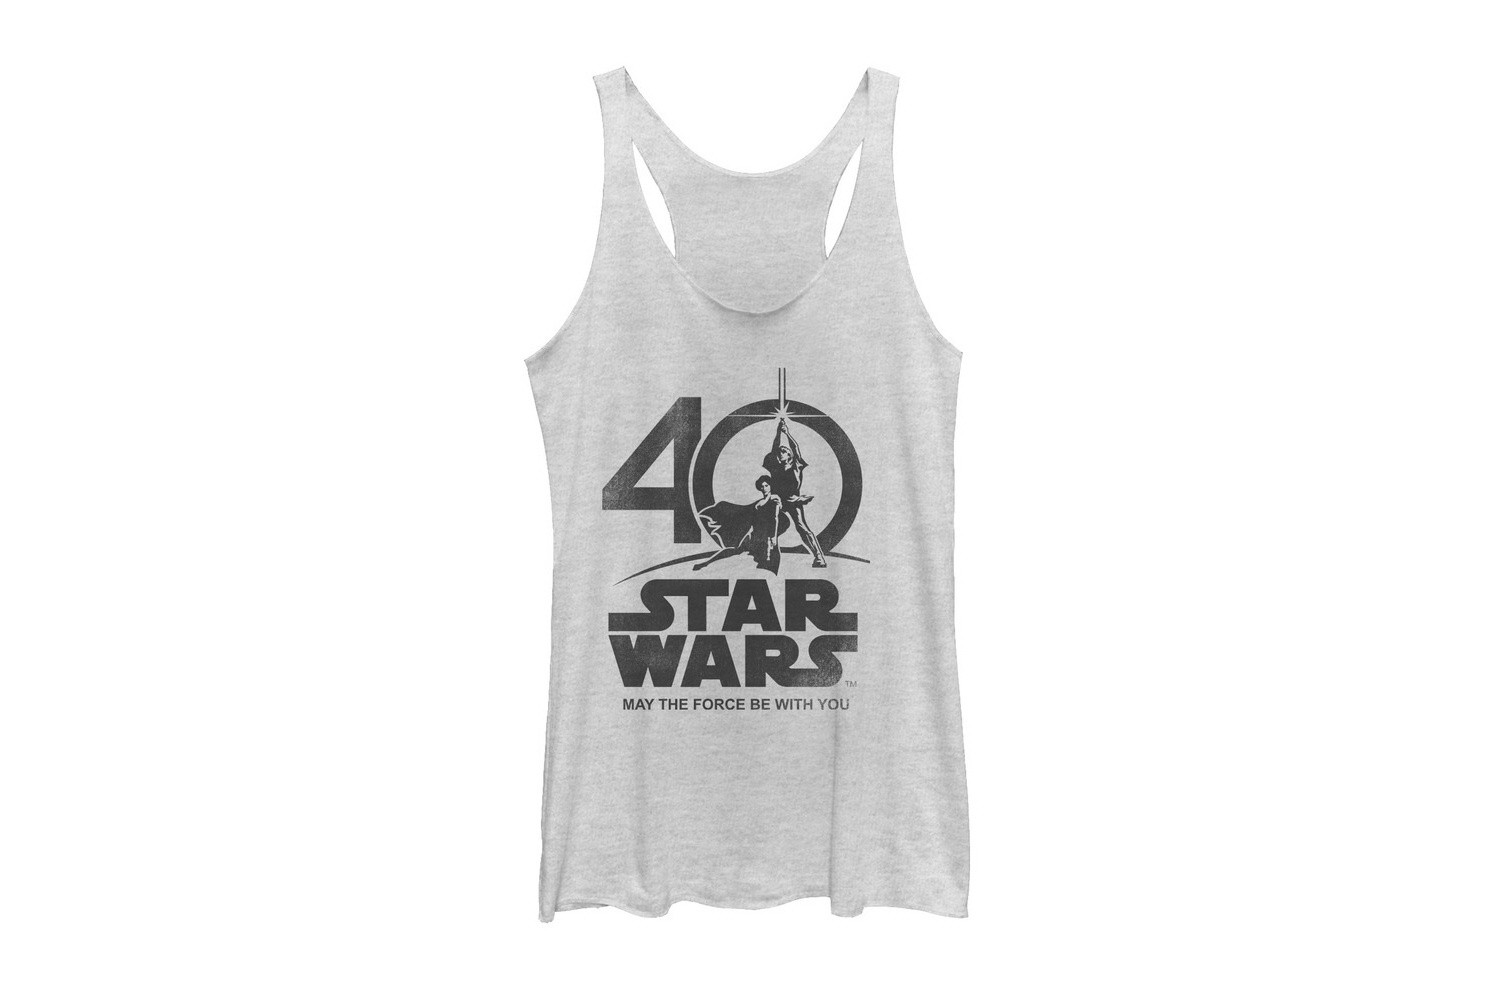 40th Anniversary Logo Tank Top by Fifth Sun